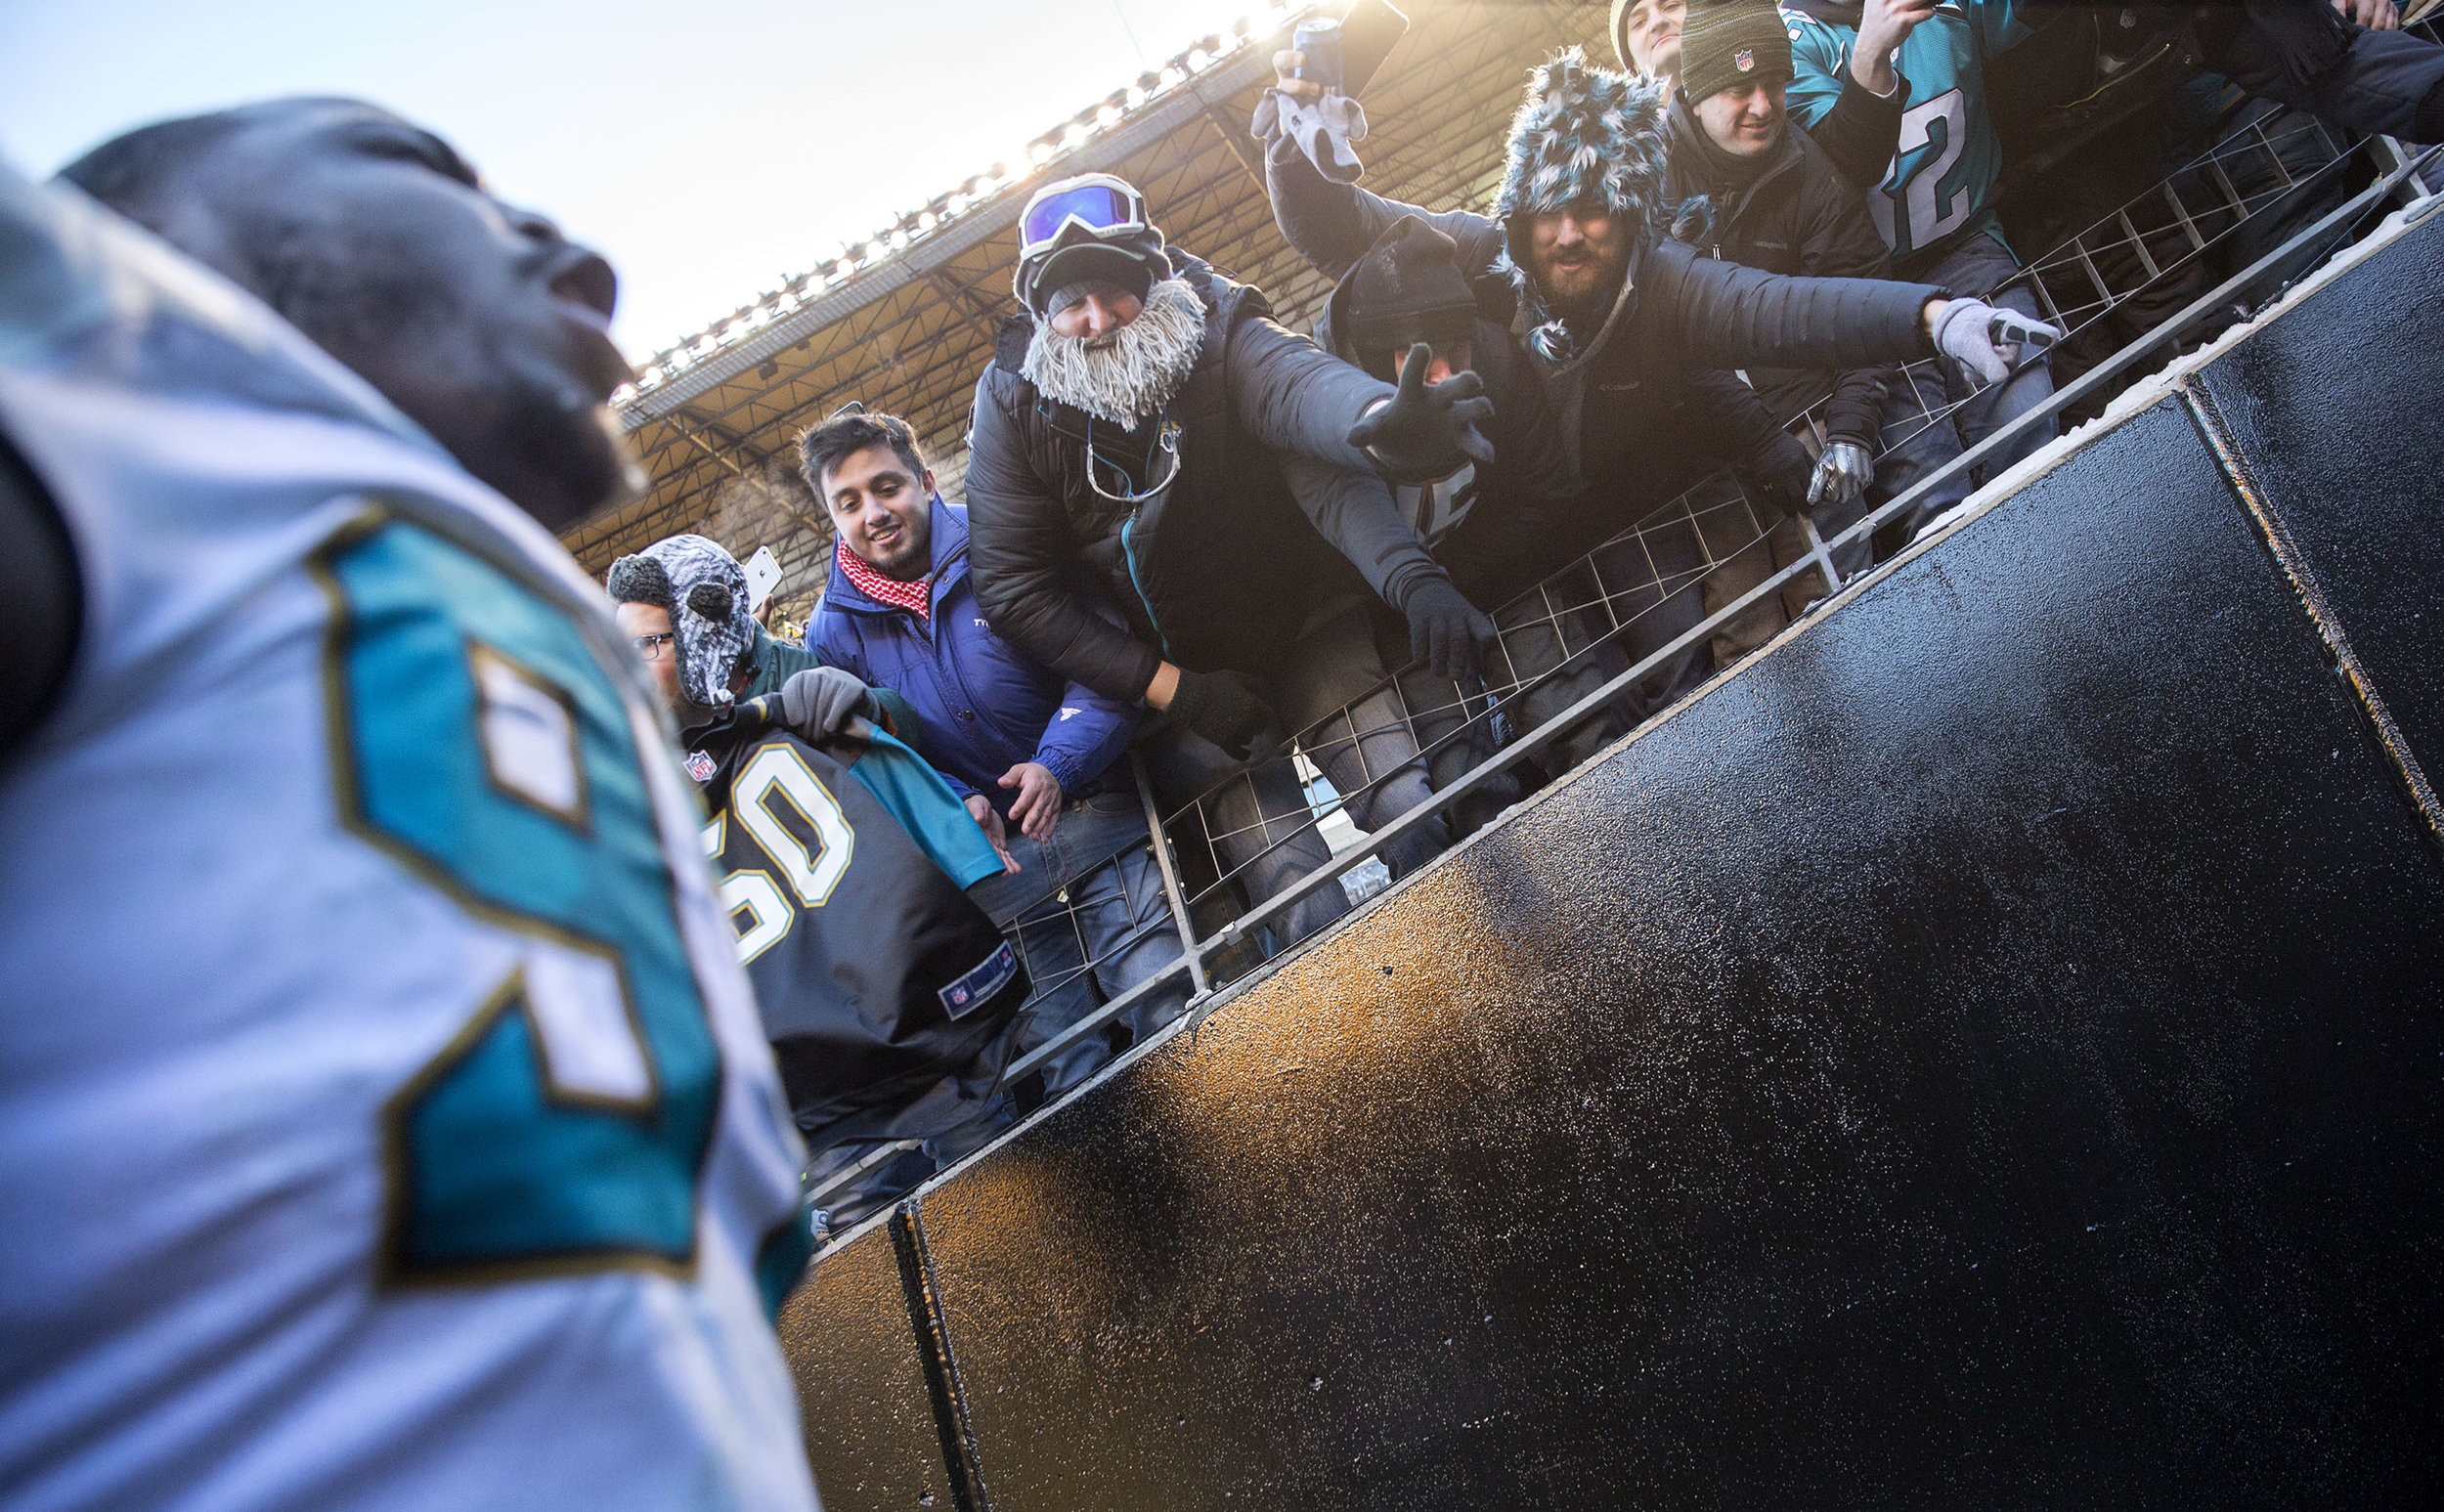 Fans wave at Jaguars Malik Johnson as he screams while entering the tunnel towards the locker room during the divisional playoff game on Sunday, Jan. 14, 2018 at Heinz Field. The Steelers lost to the Jaguars 45-42.